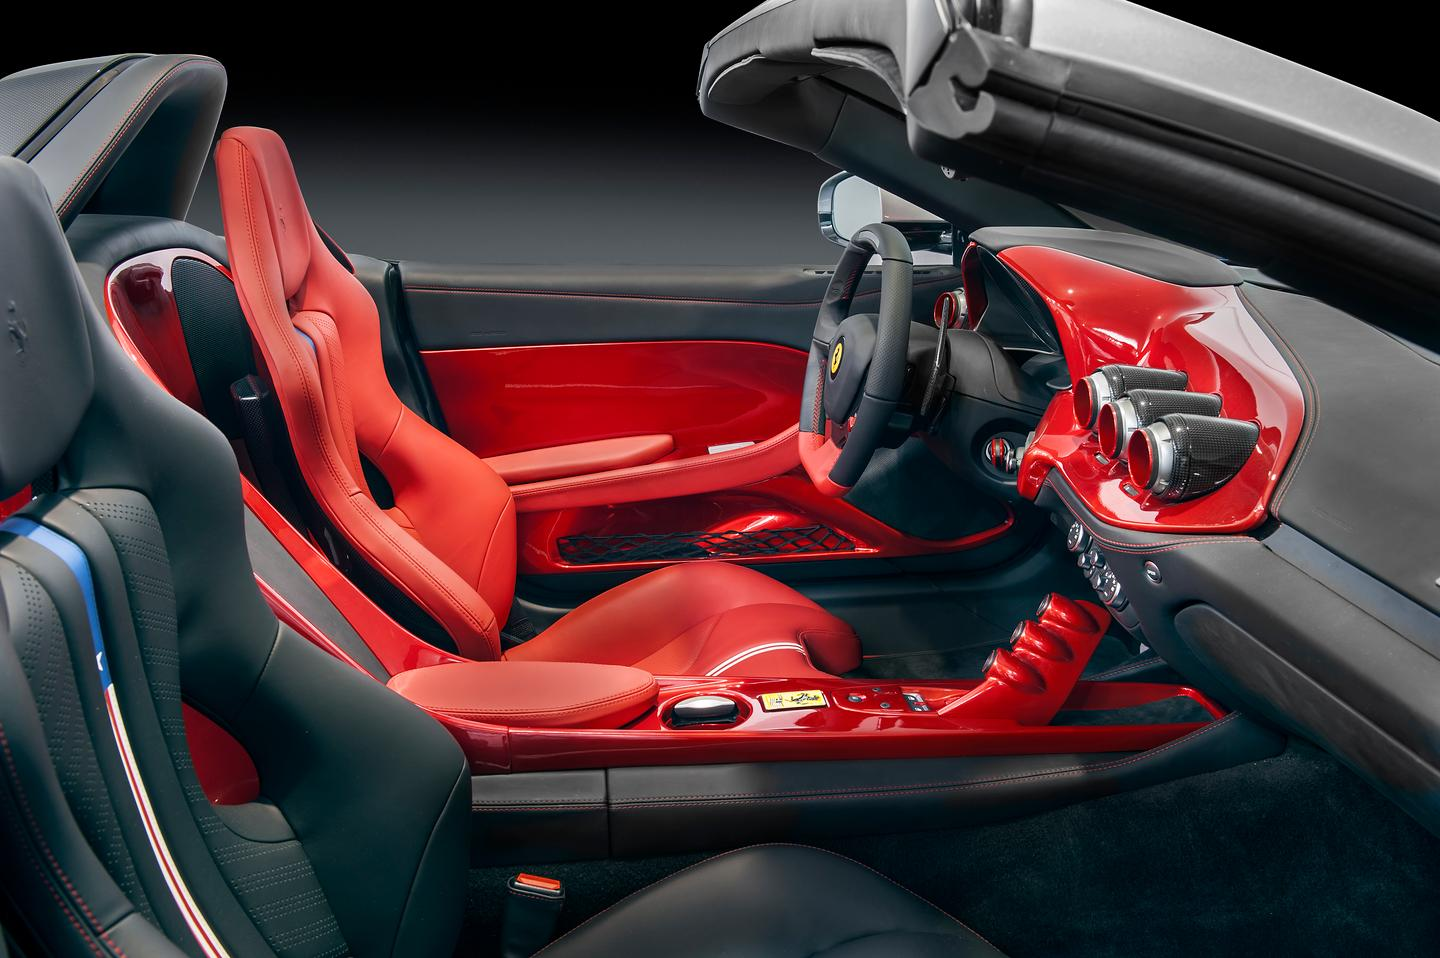 The F60's interior is trimmed in red on the driver's side, and black on the passenger side